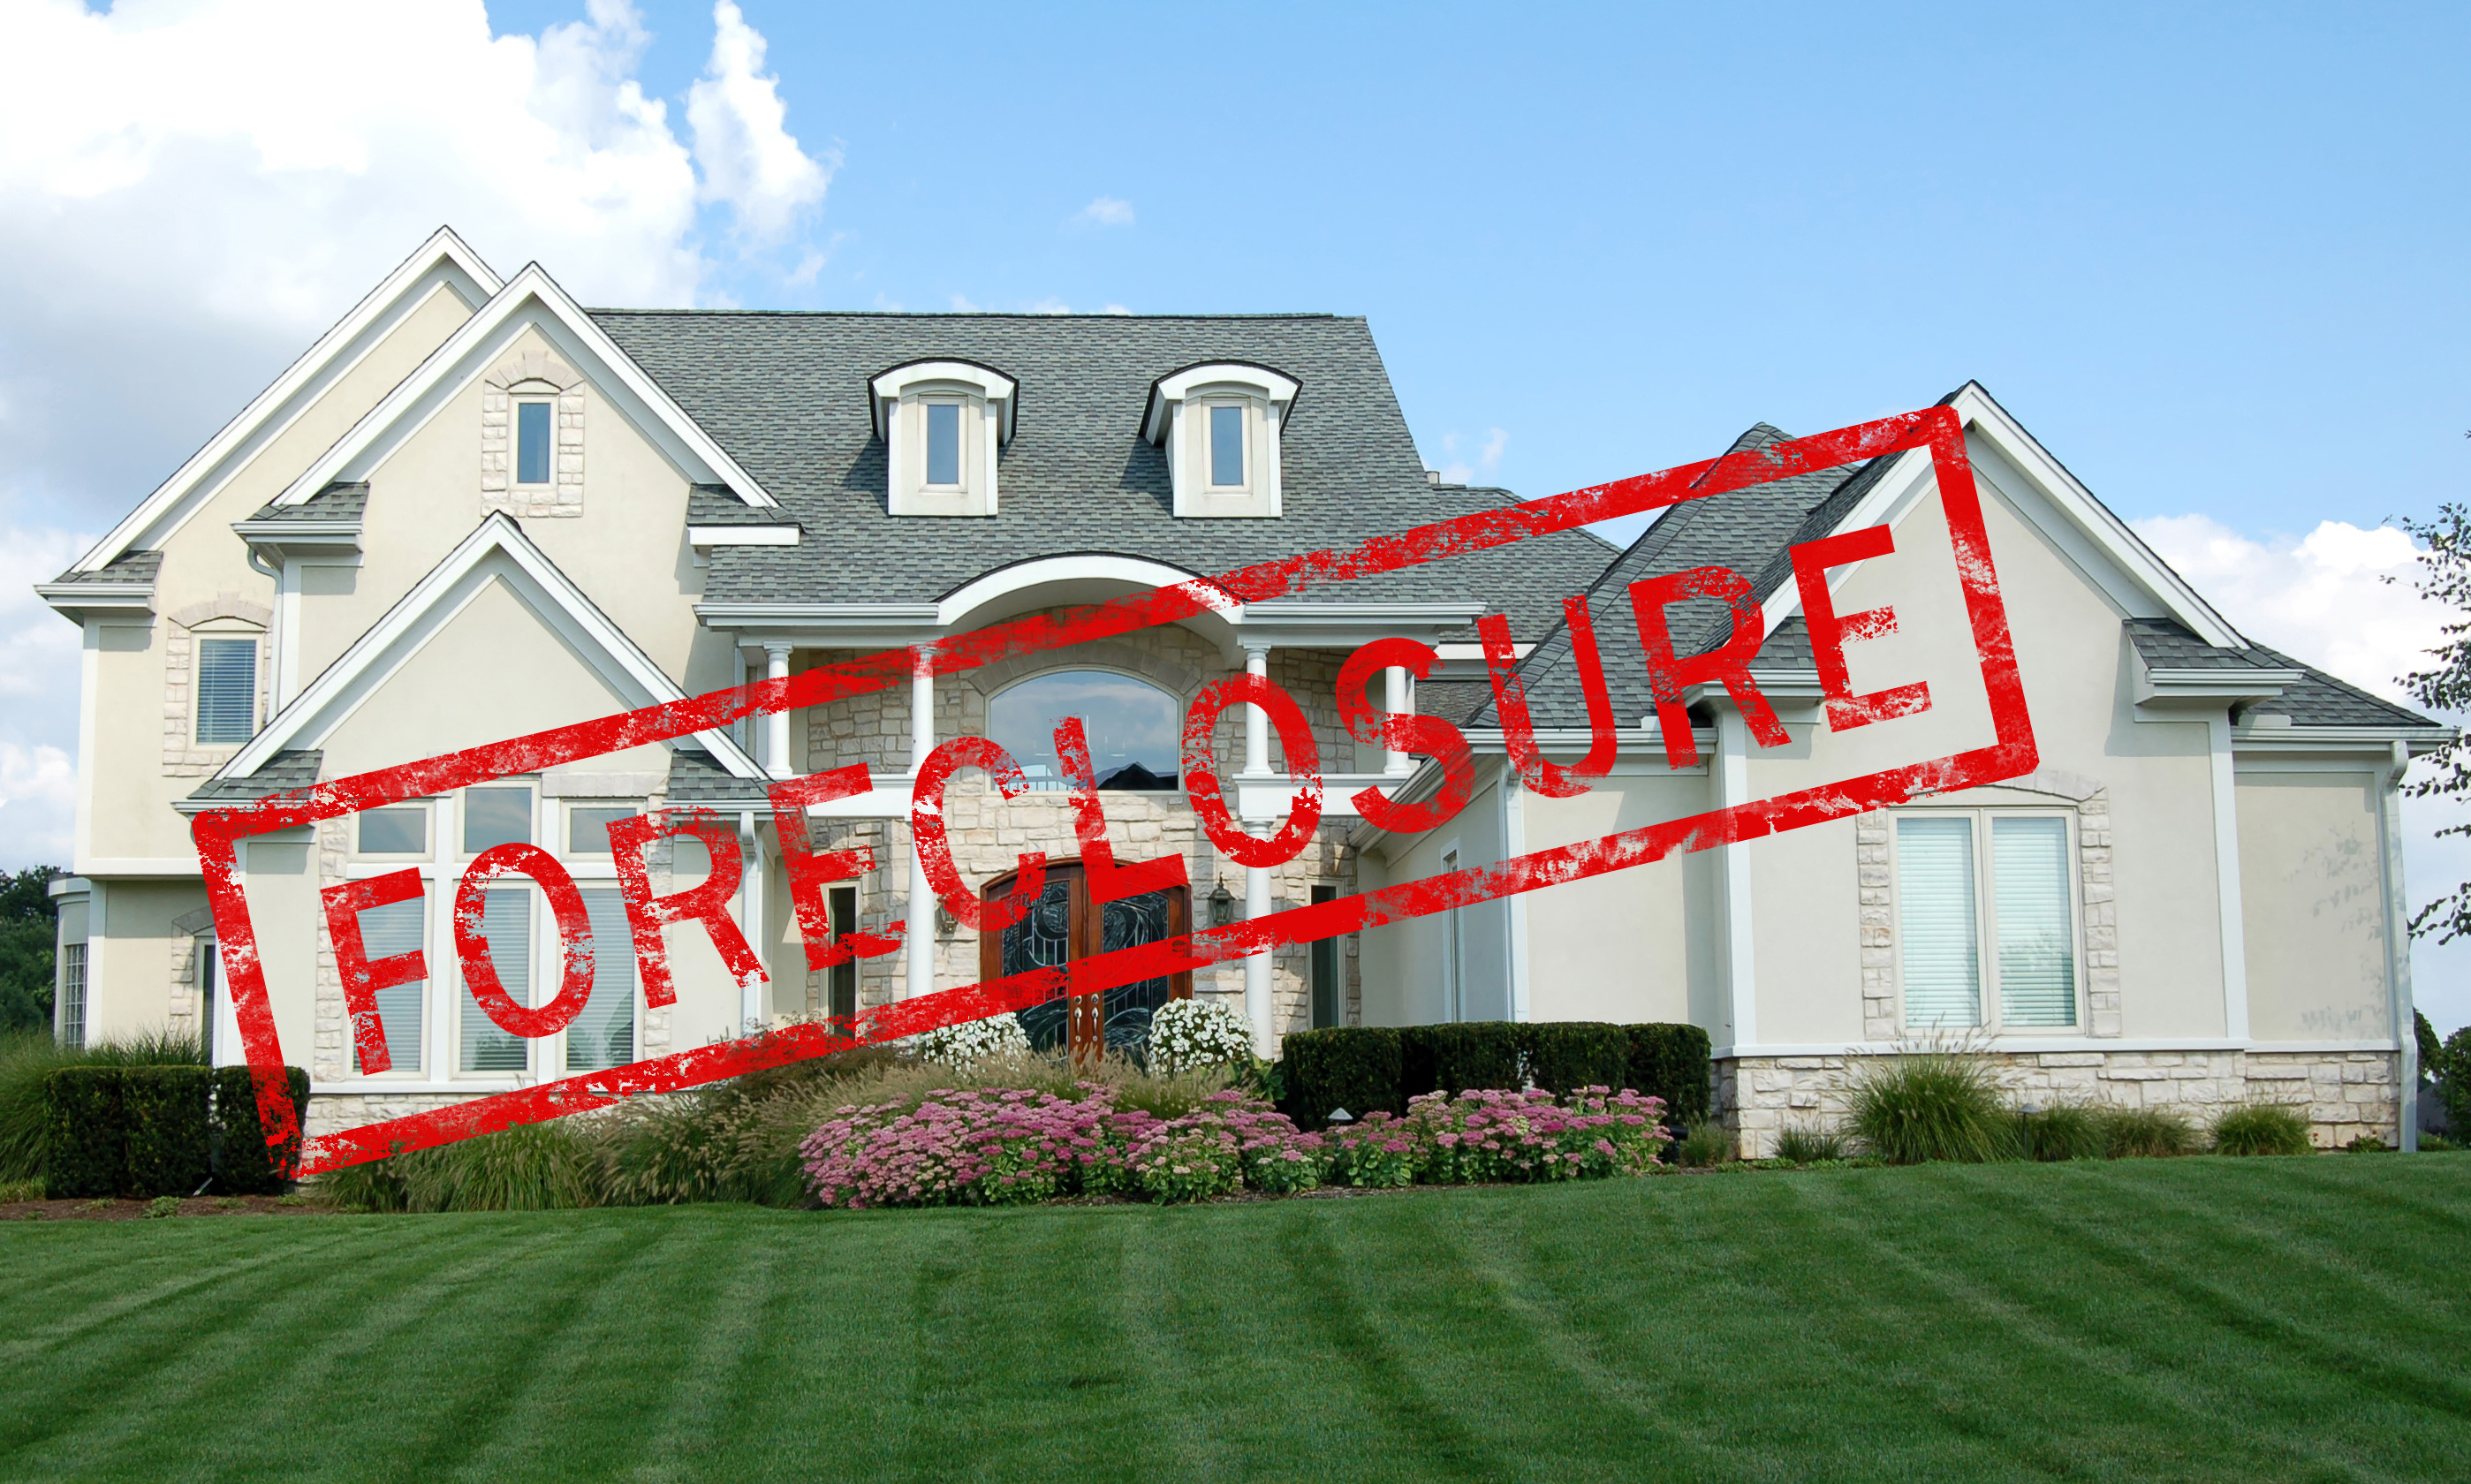 Call Anderson & Associates when you need appraisals pertaining to Clark foreclosures